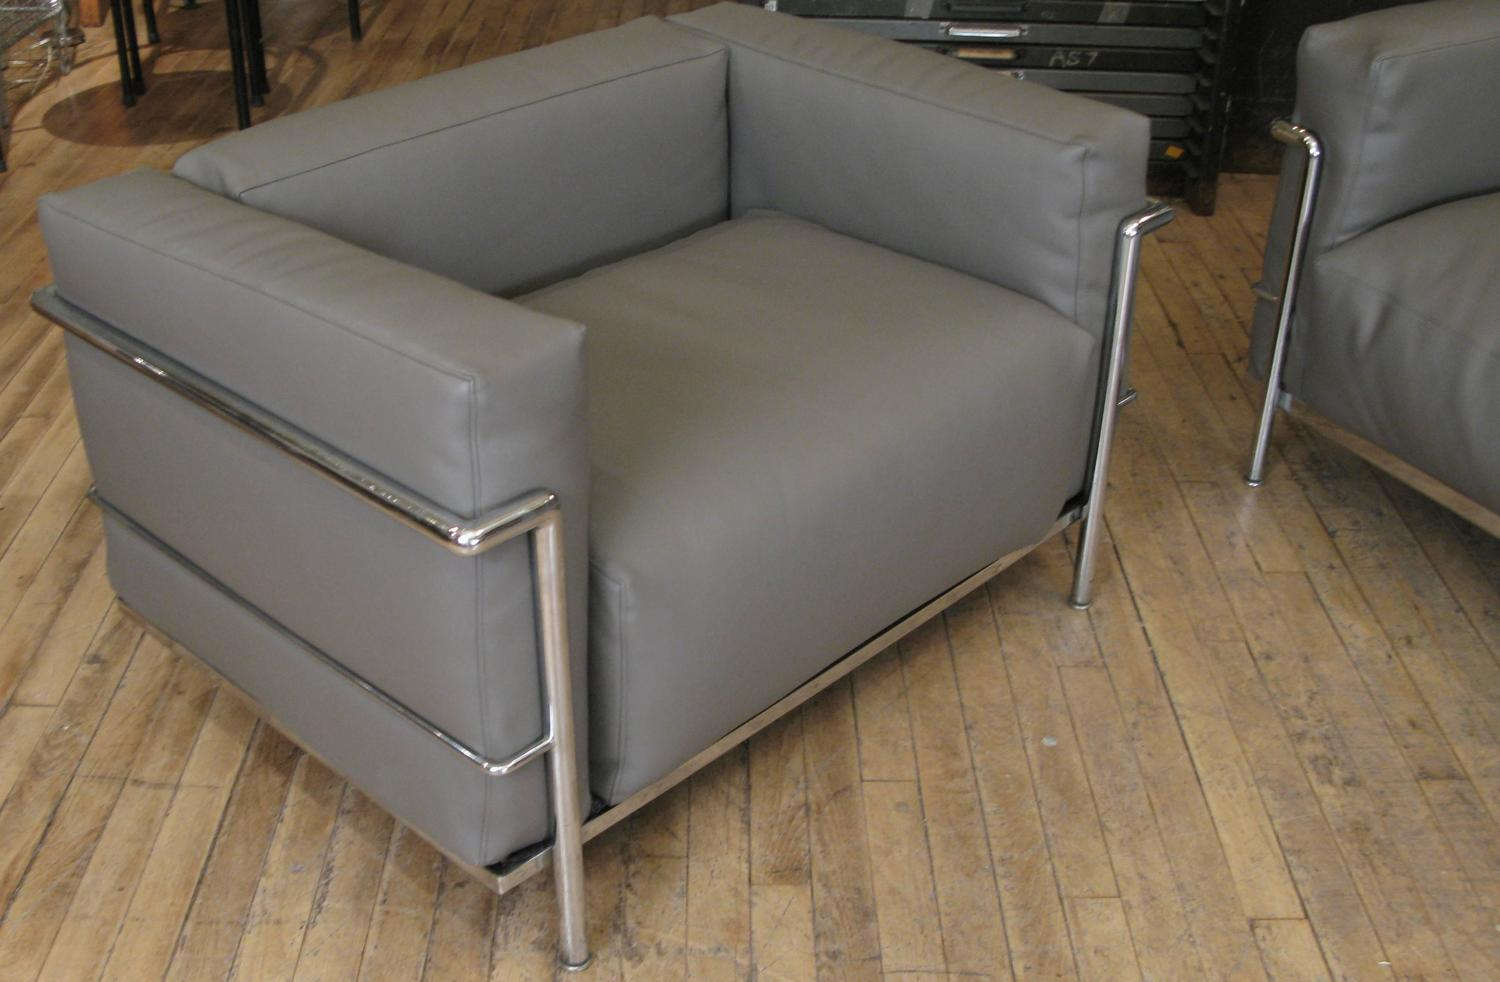 Vintage italian corbusier sofa and grand confort lounge for Sofas gran confort